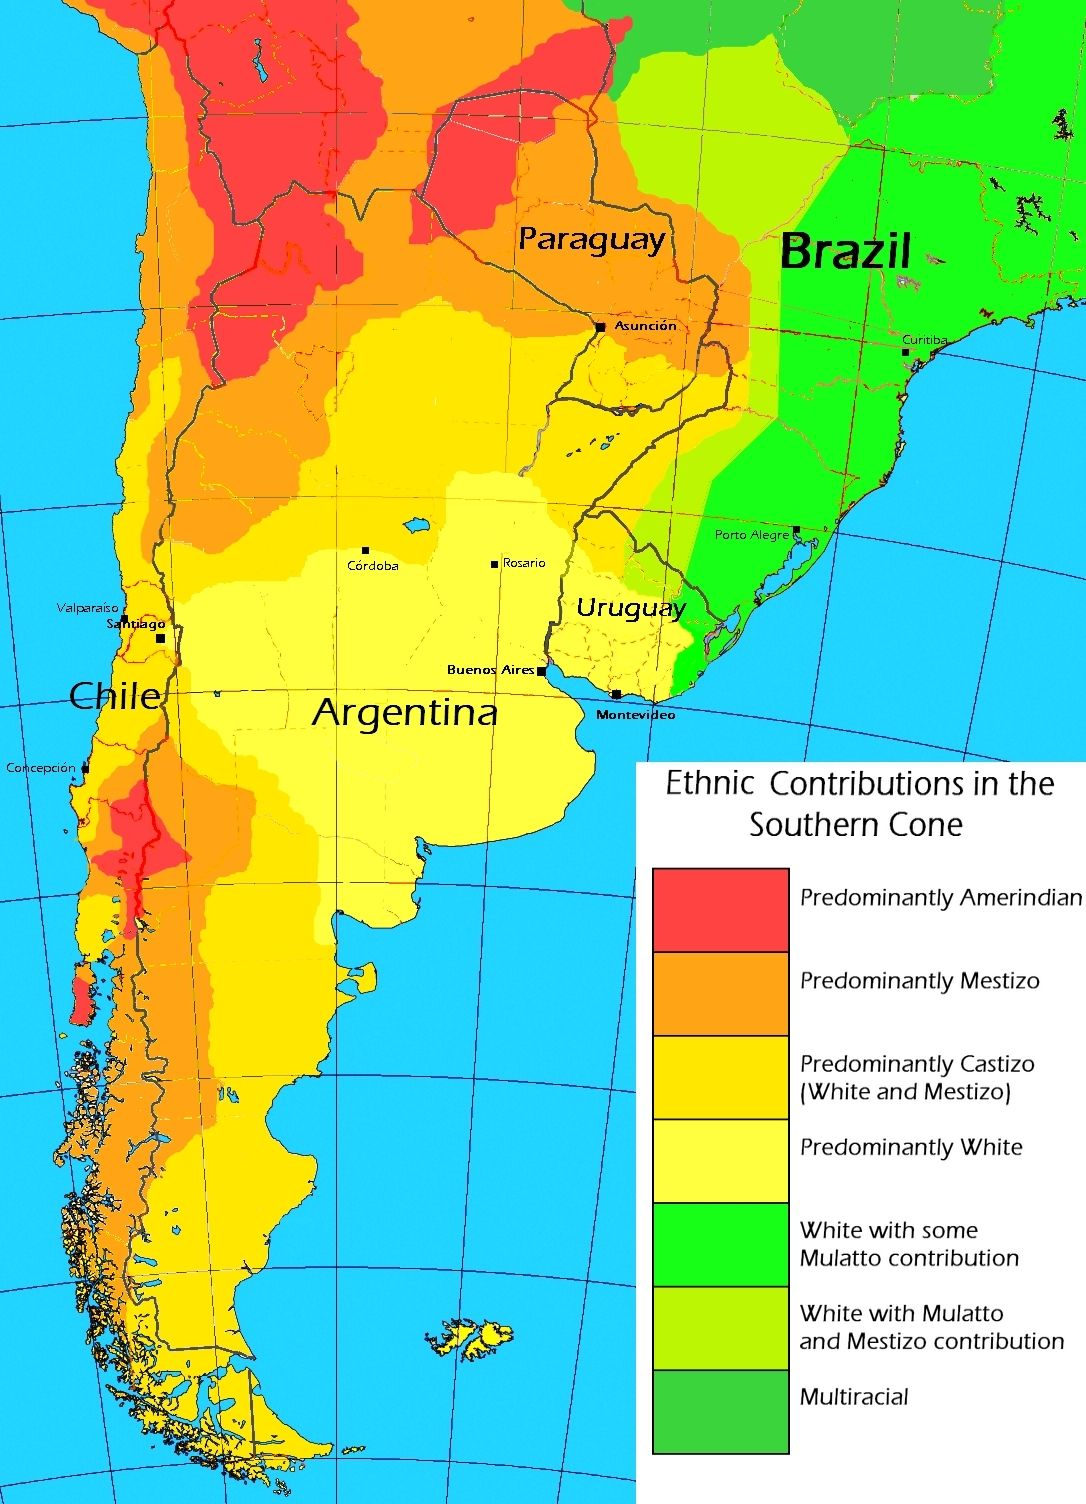 Ethnic Contributions in the Southern Cone of South America ... on ethnic groups of central america, ethnic population of europe, aboriginals in south america, paraguay map south america, ethnic western asia map, ethnic populations in africa, ethnic origin us map by county,